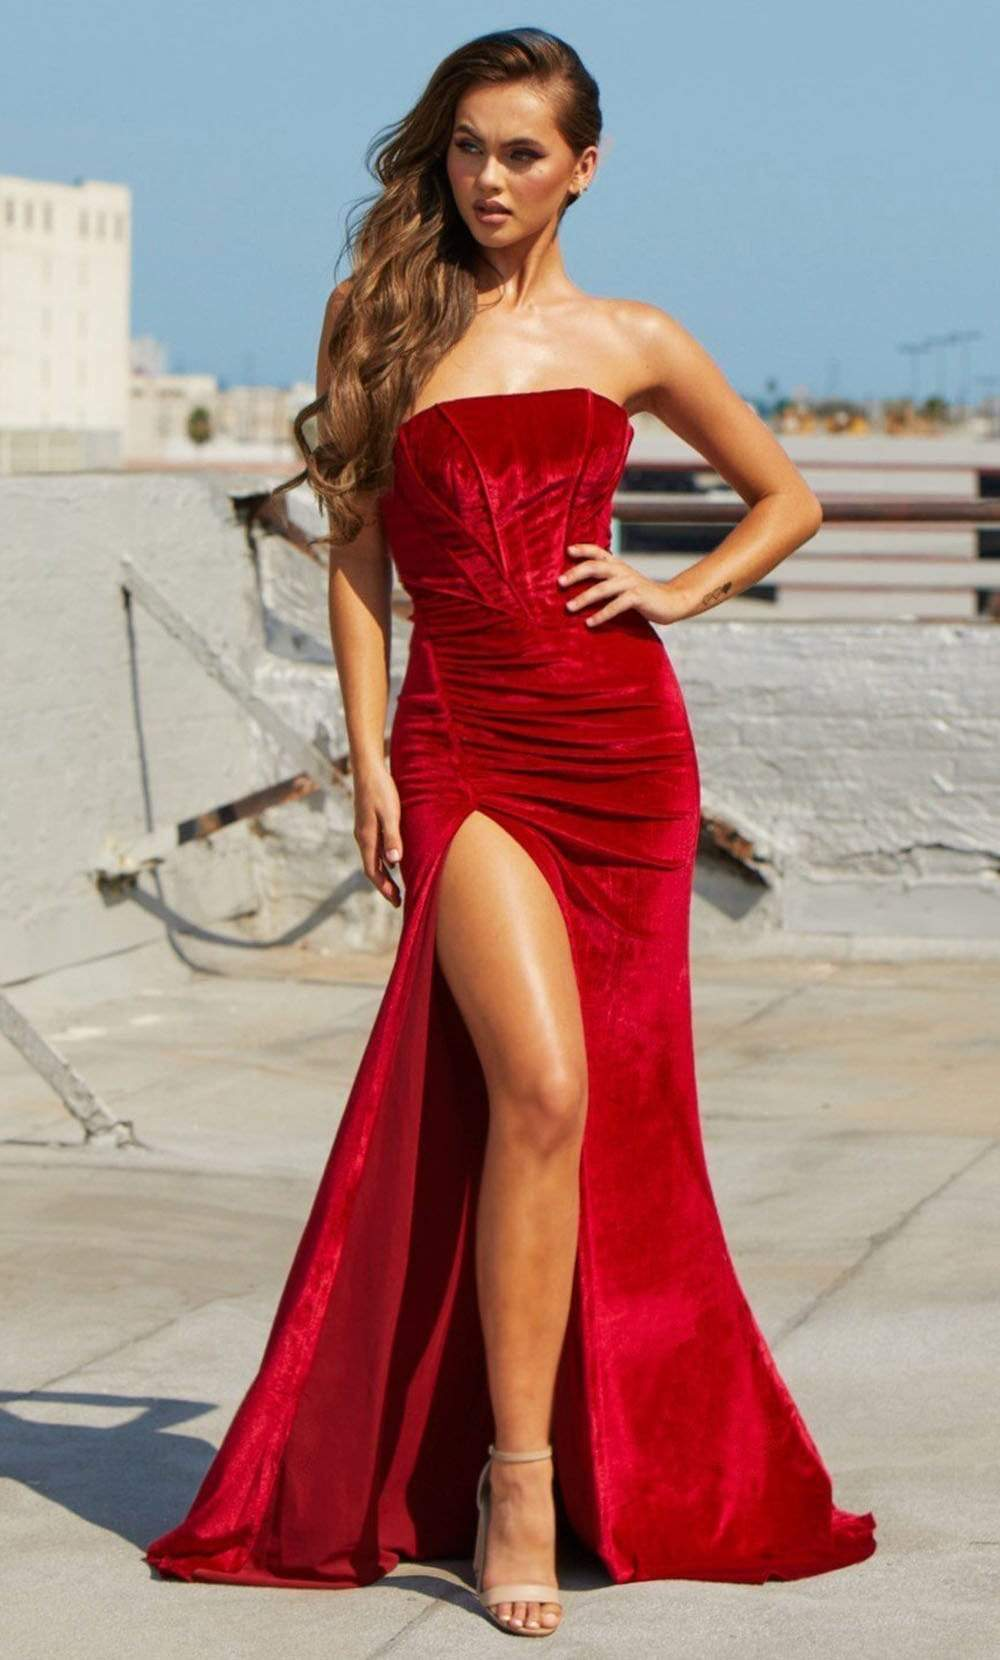 Portia and Scarlett - PS21206 Strapless Velvet Trumpet Gown from Portia and Scarlett